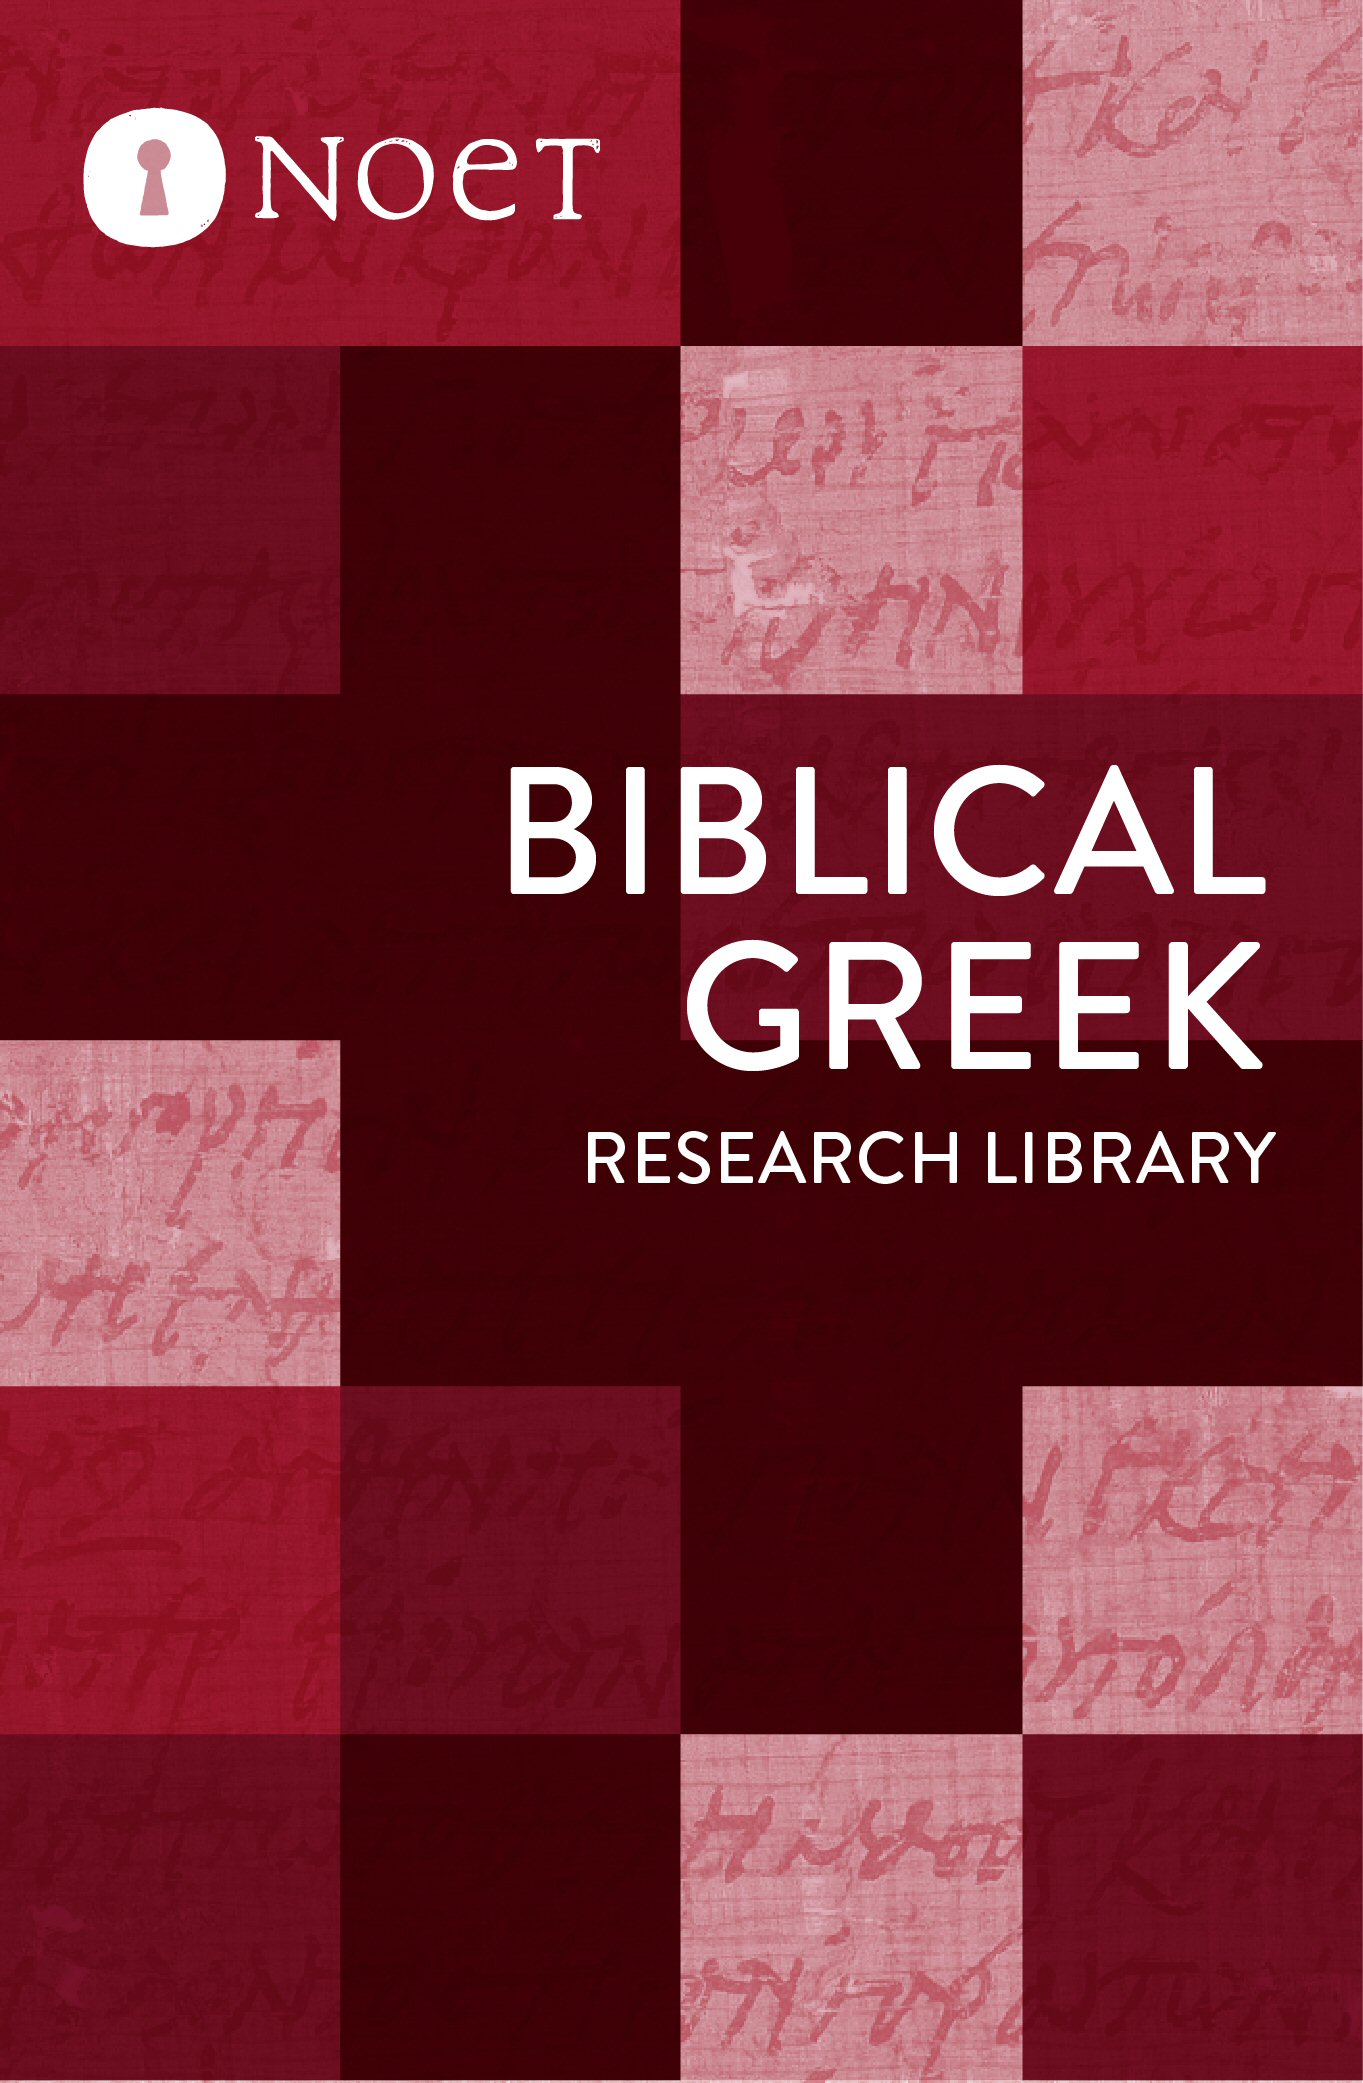 Biblical Greek Research Library (32 vols.)